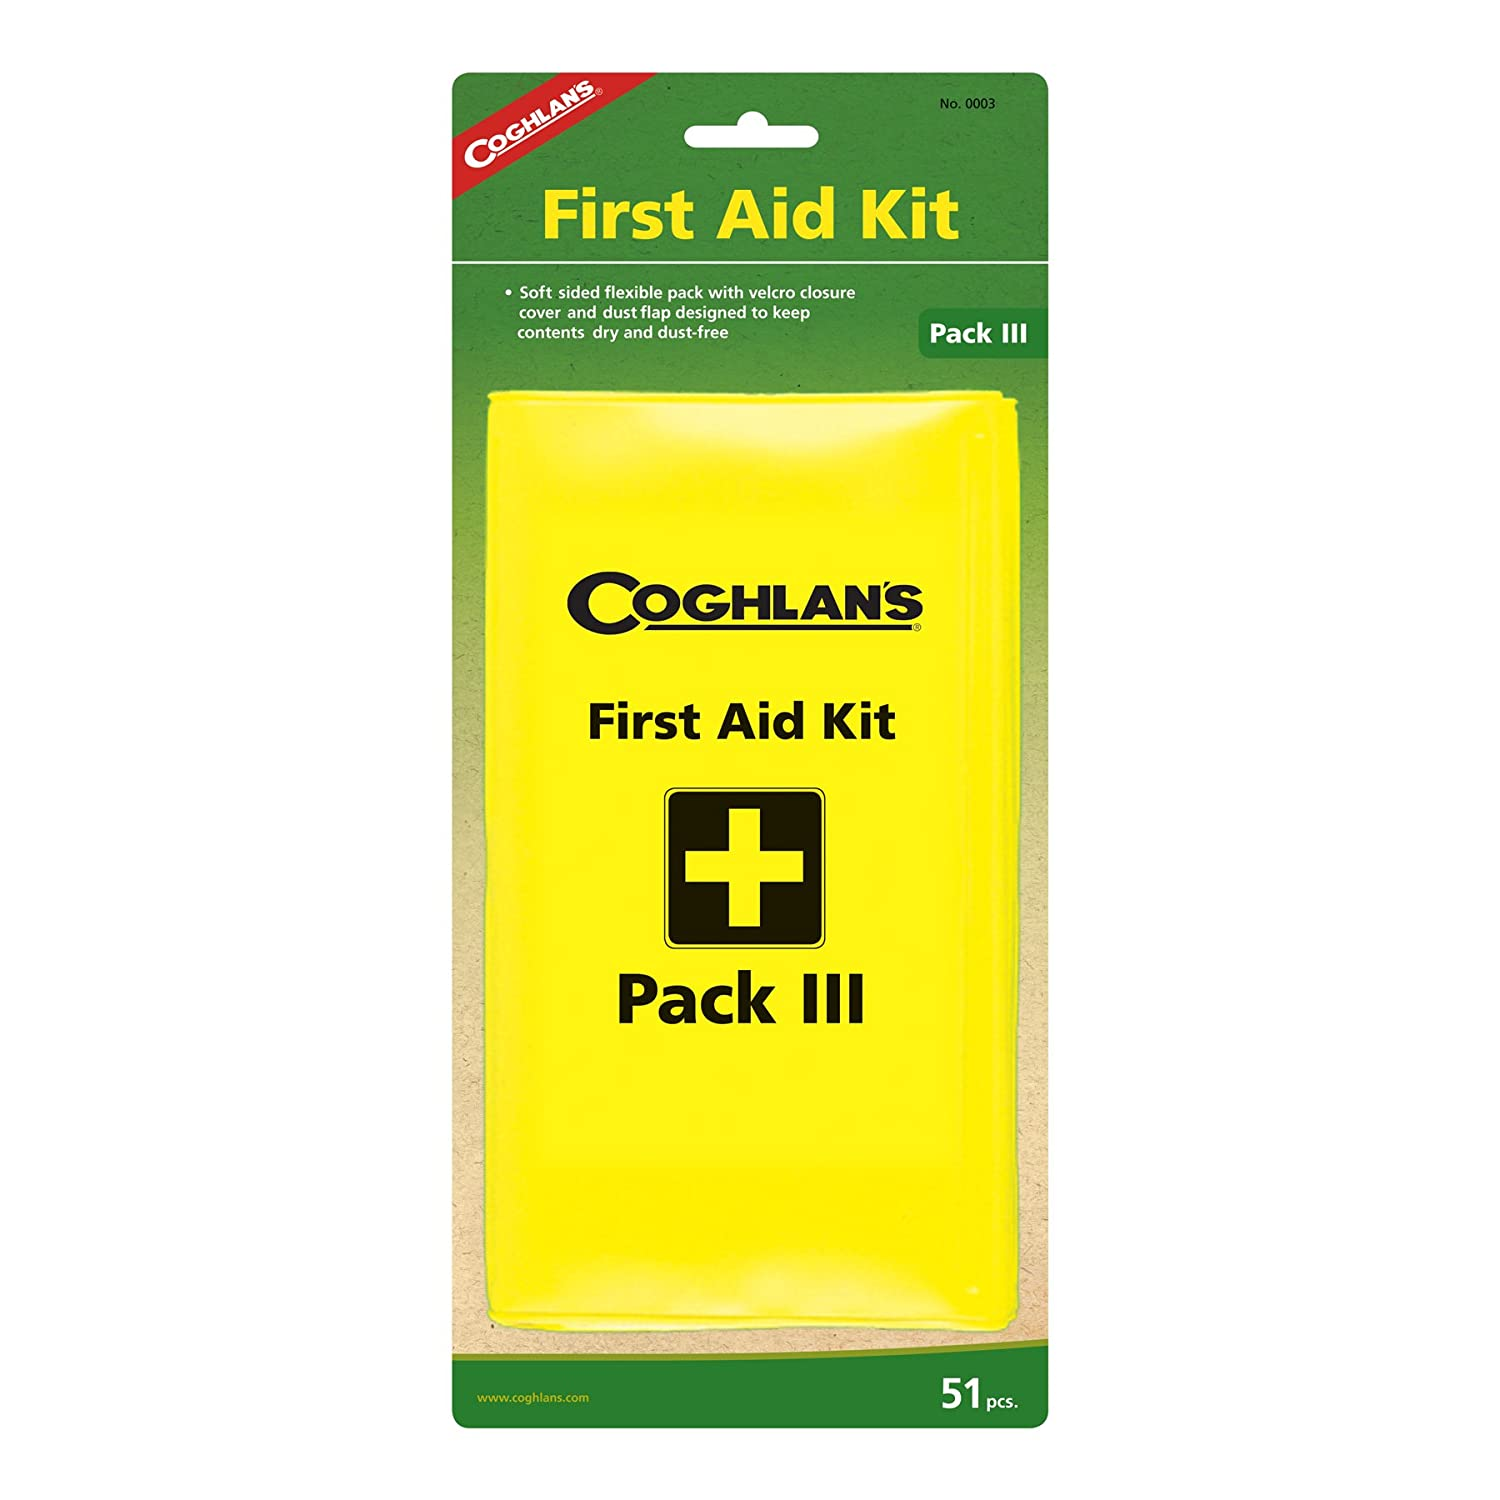 Coghlan's Pack III First Aid Kit Coghlans 0003